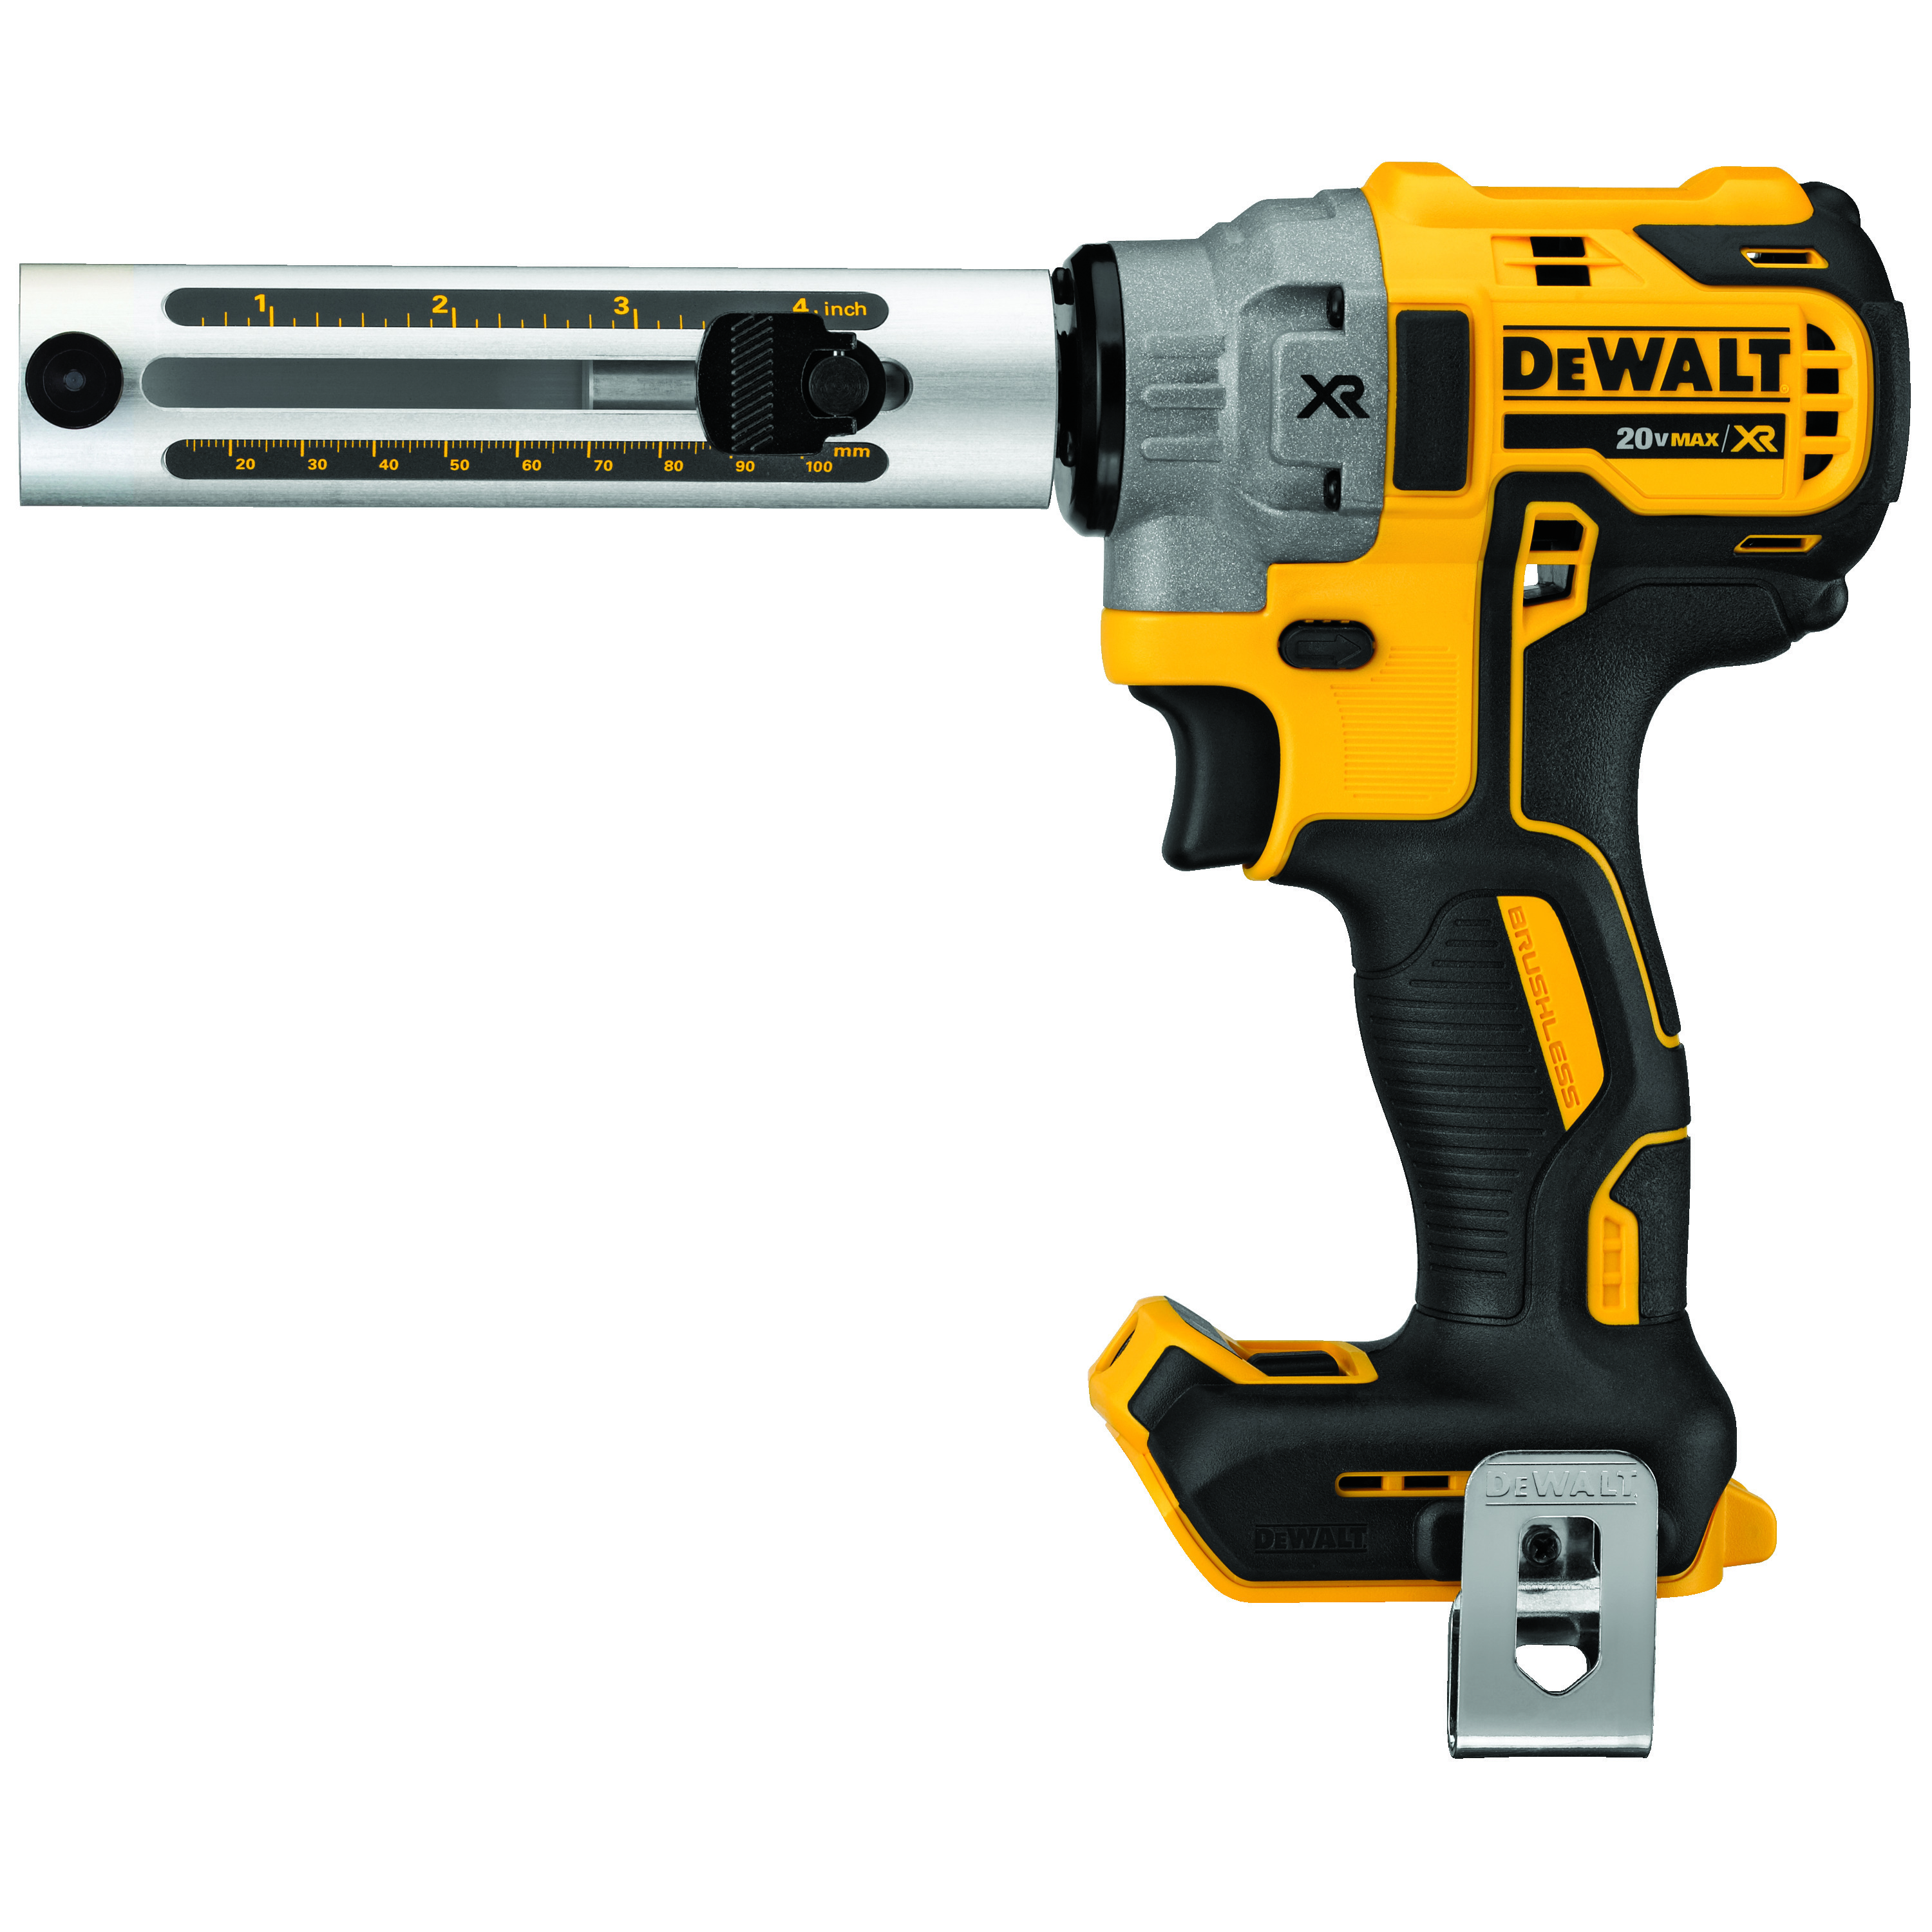 DeWALT® DCE151B Cordless Cable Stripper, 5 AWG to 900 kcmil Aluminum/6 AWG to 750 kcmil Copper Cutting, 20 VDC, Lithium-Ion Battery